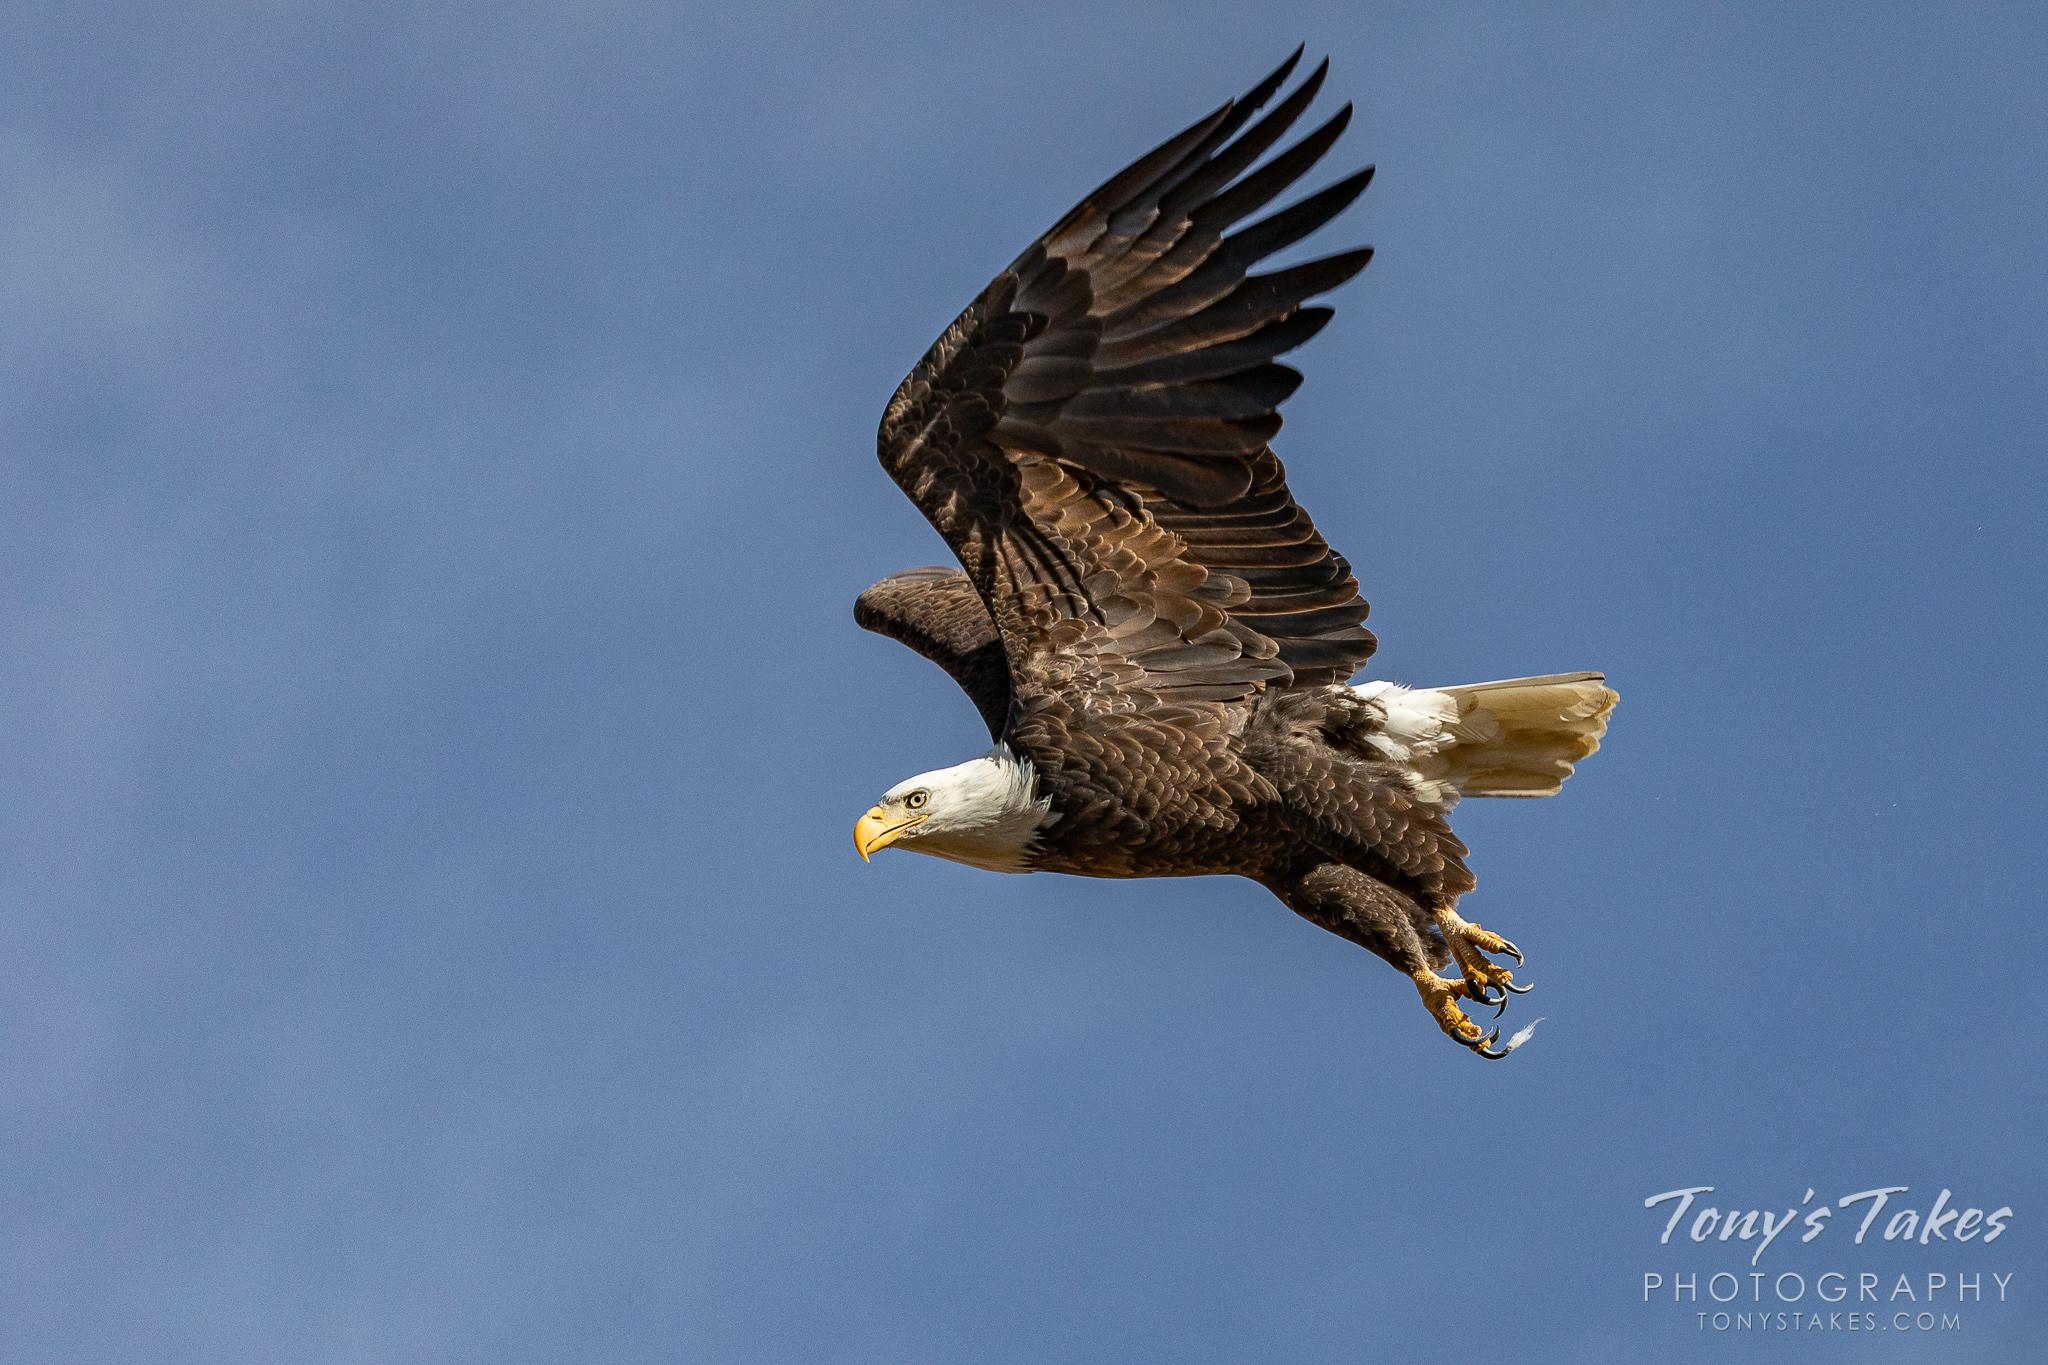 Bald eagle takes flight in honor of Veterans Day